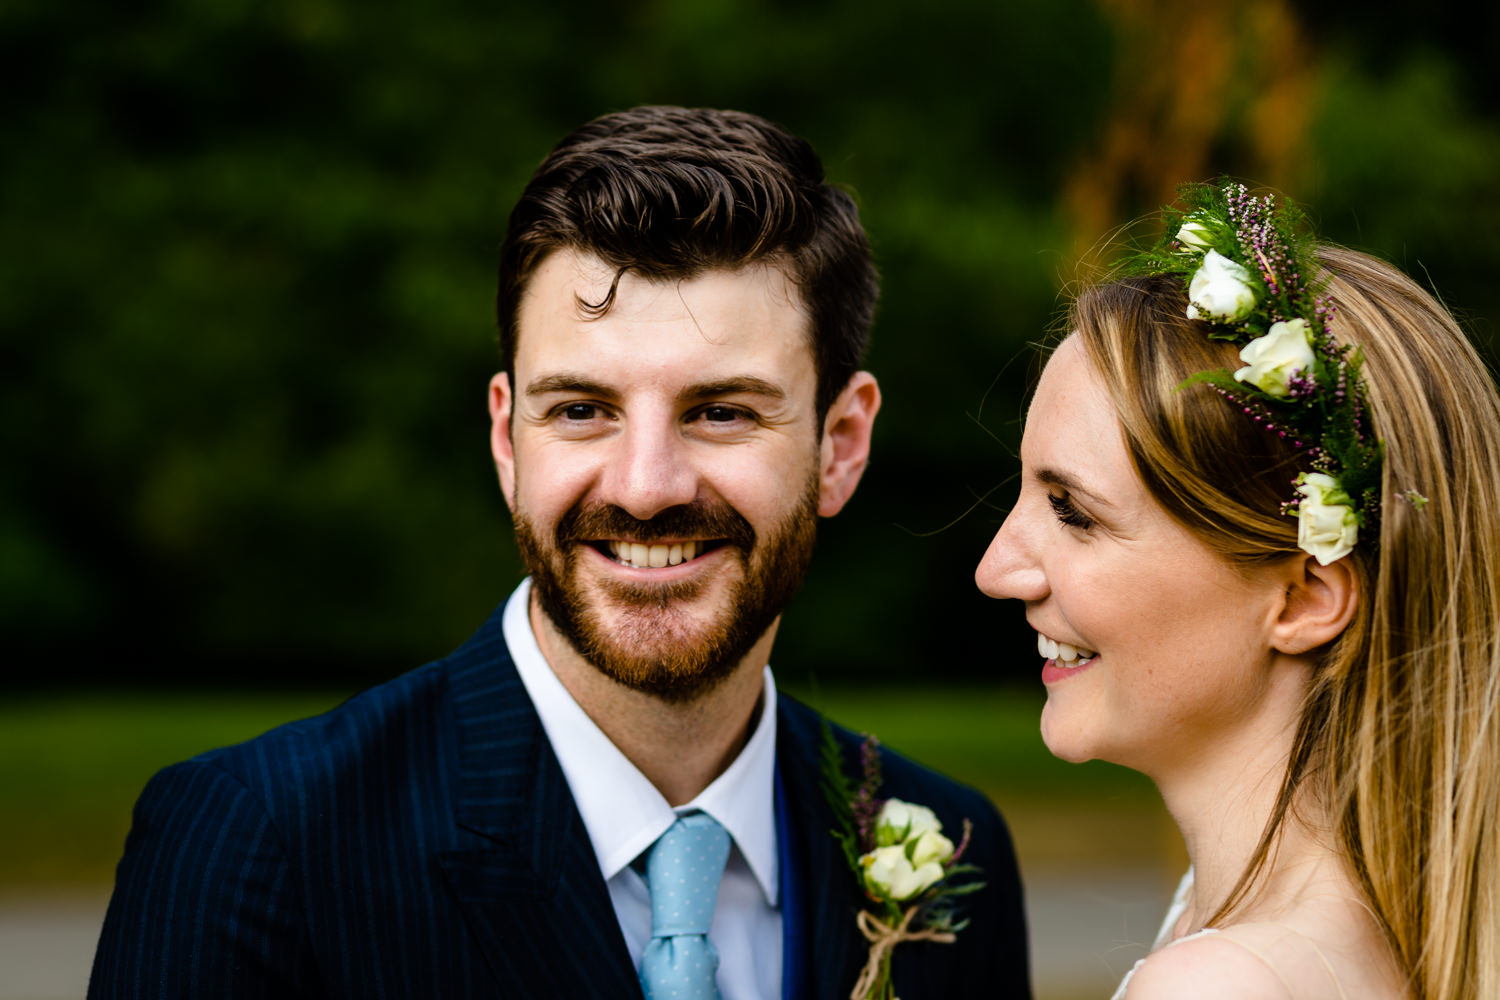 A bride smiles at her groom wedding photographers Whirlowbrook Hall Sheffield